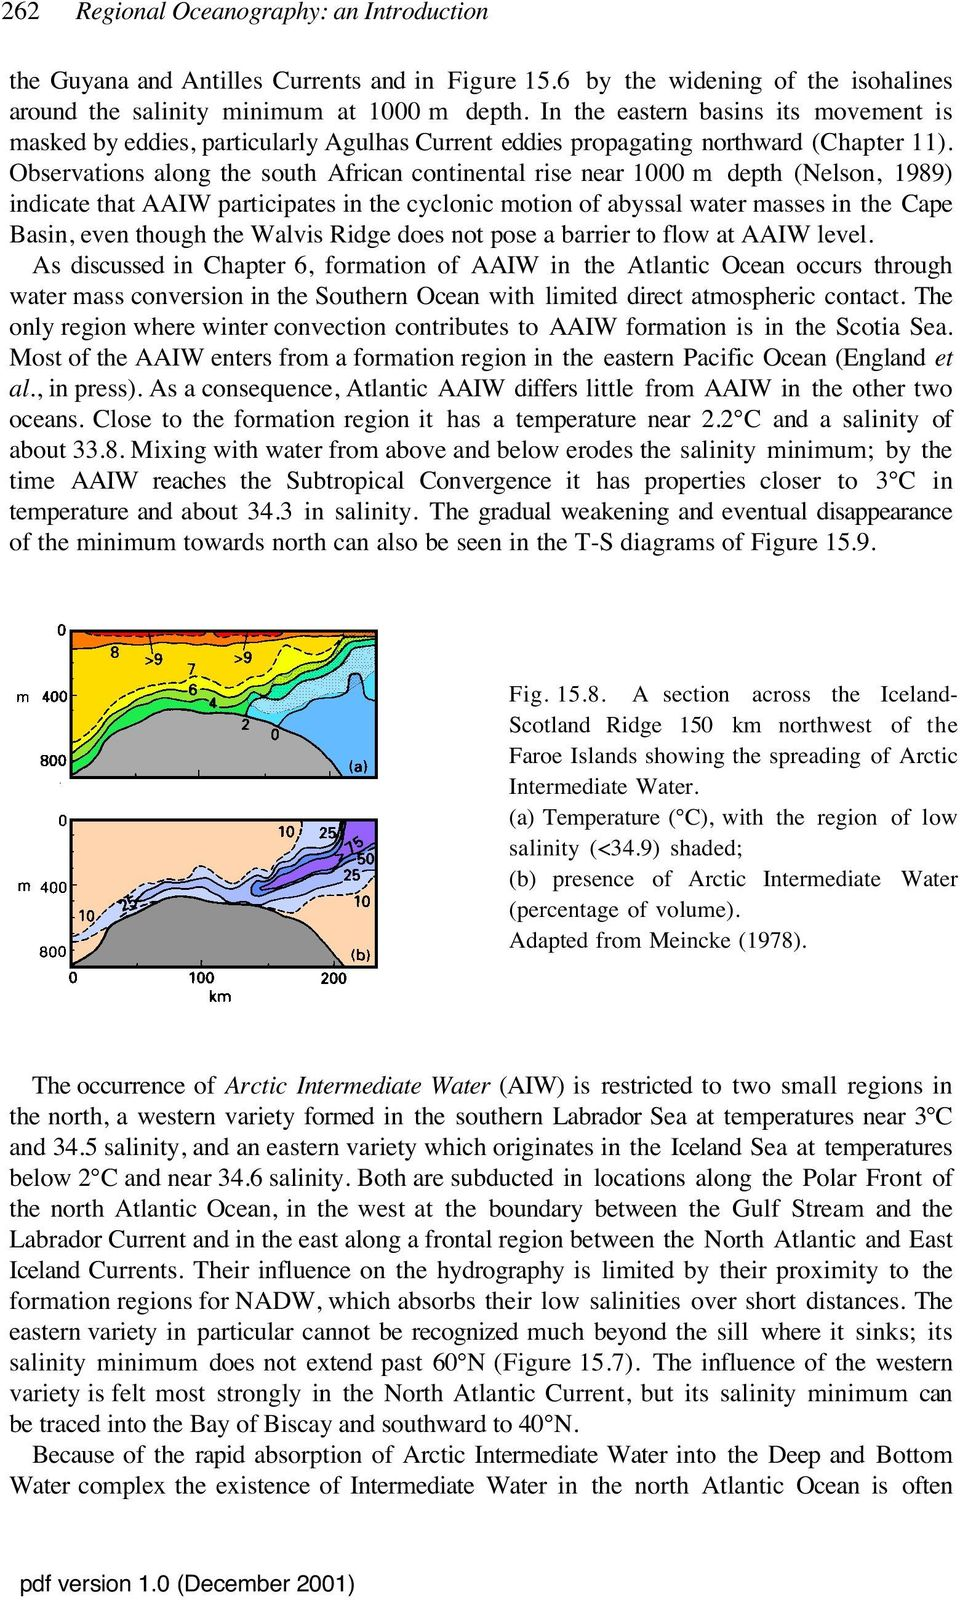 Observations along the south African continental rise near 1000 m depth (Nelson, 1989) indicate that AAIW participates in the cyclonic motion of abyssal water masses in the Cape Basin, even though